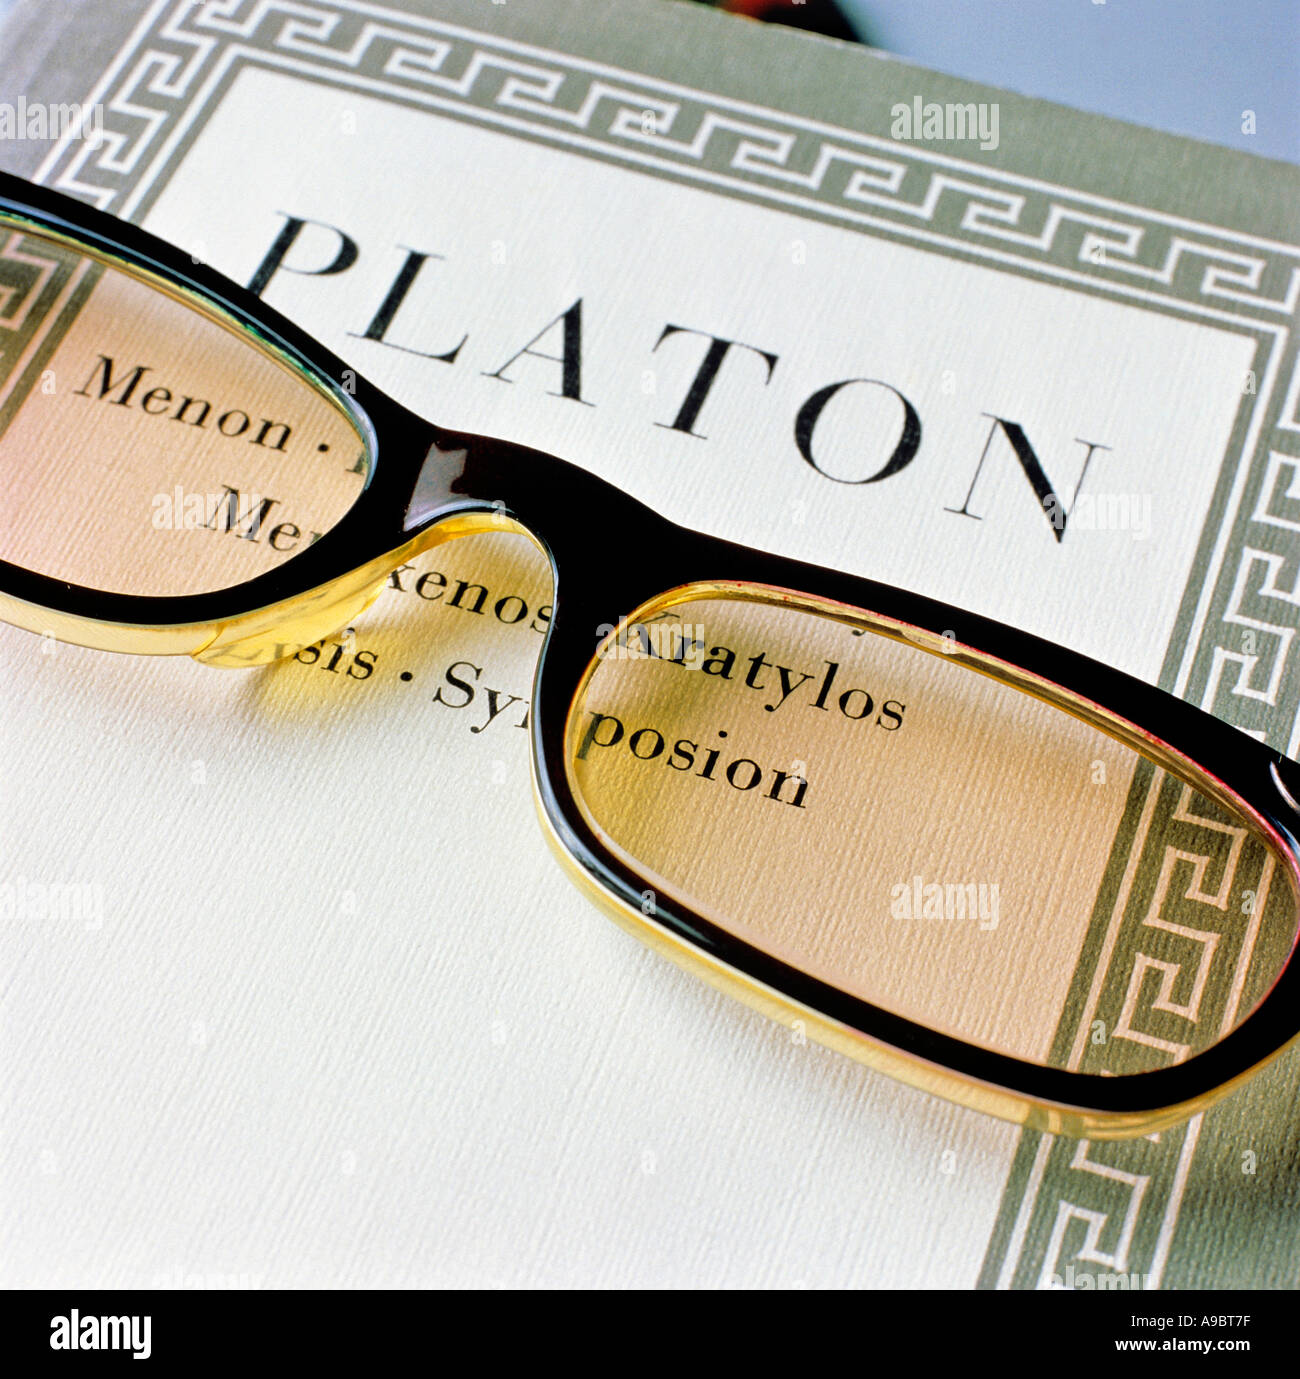 book of platon title menon kratylos menexenos symposion symbolism for philosophy editorial use only - Stock Image